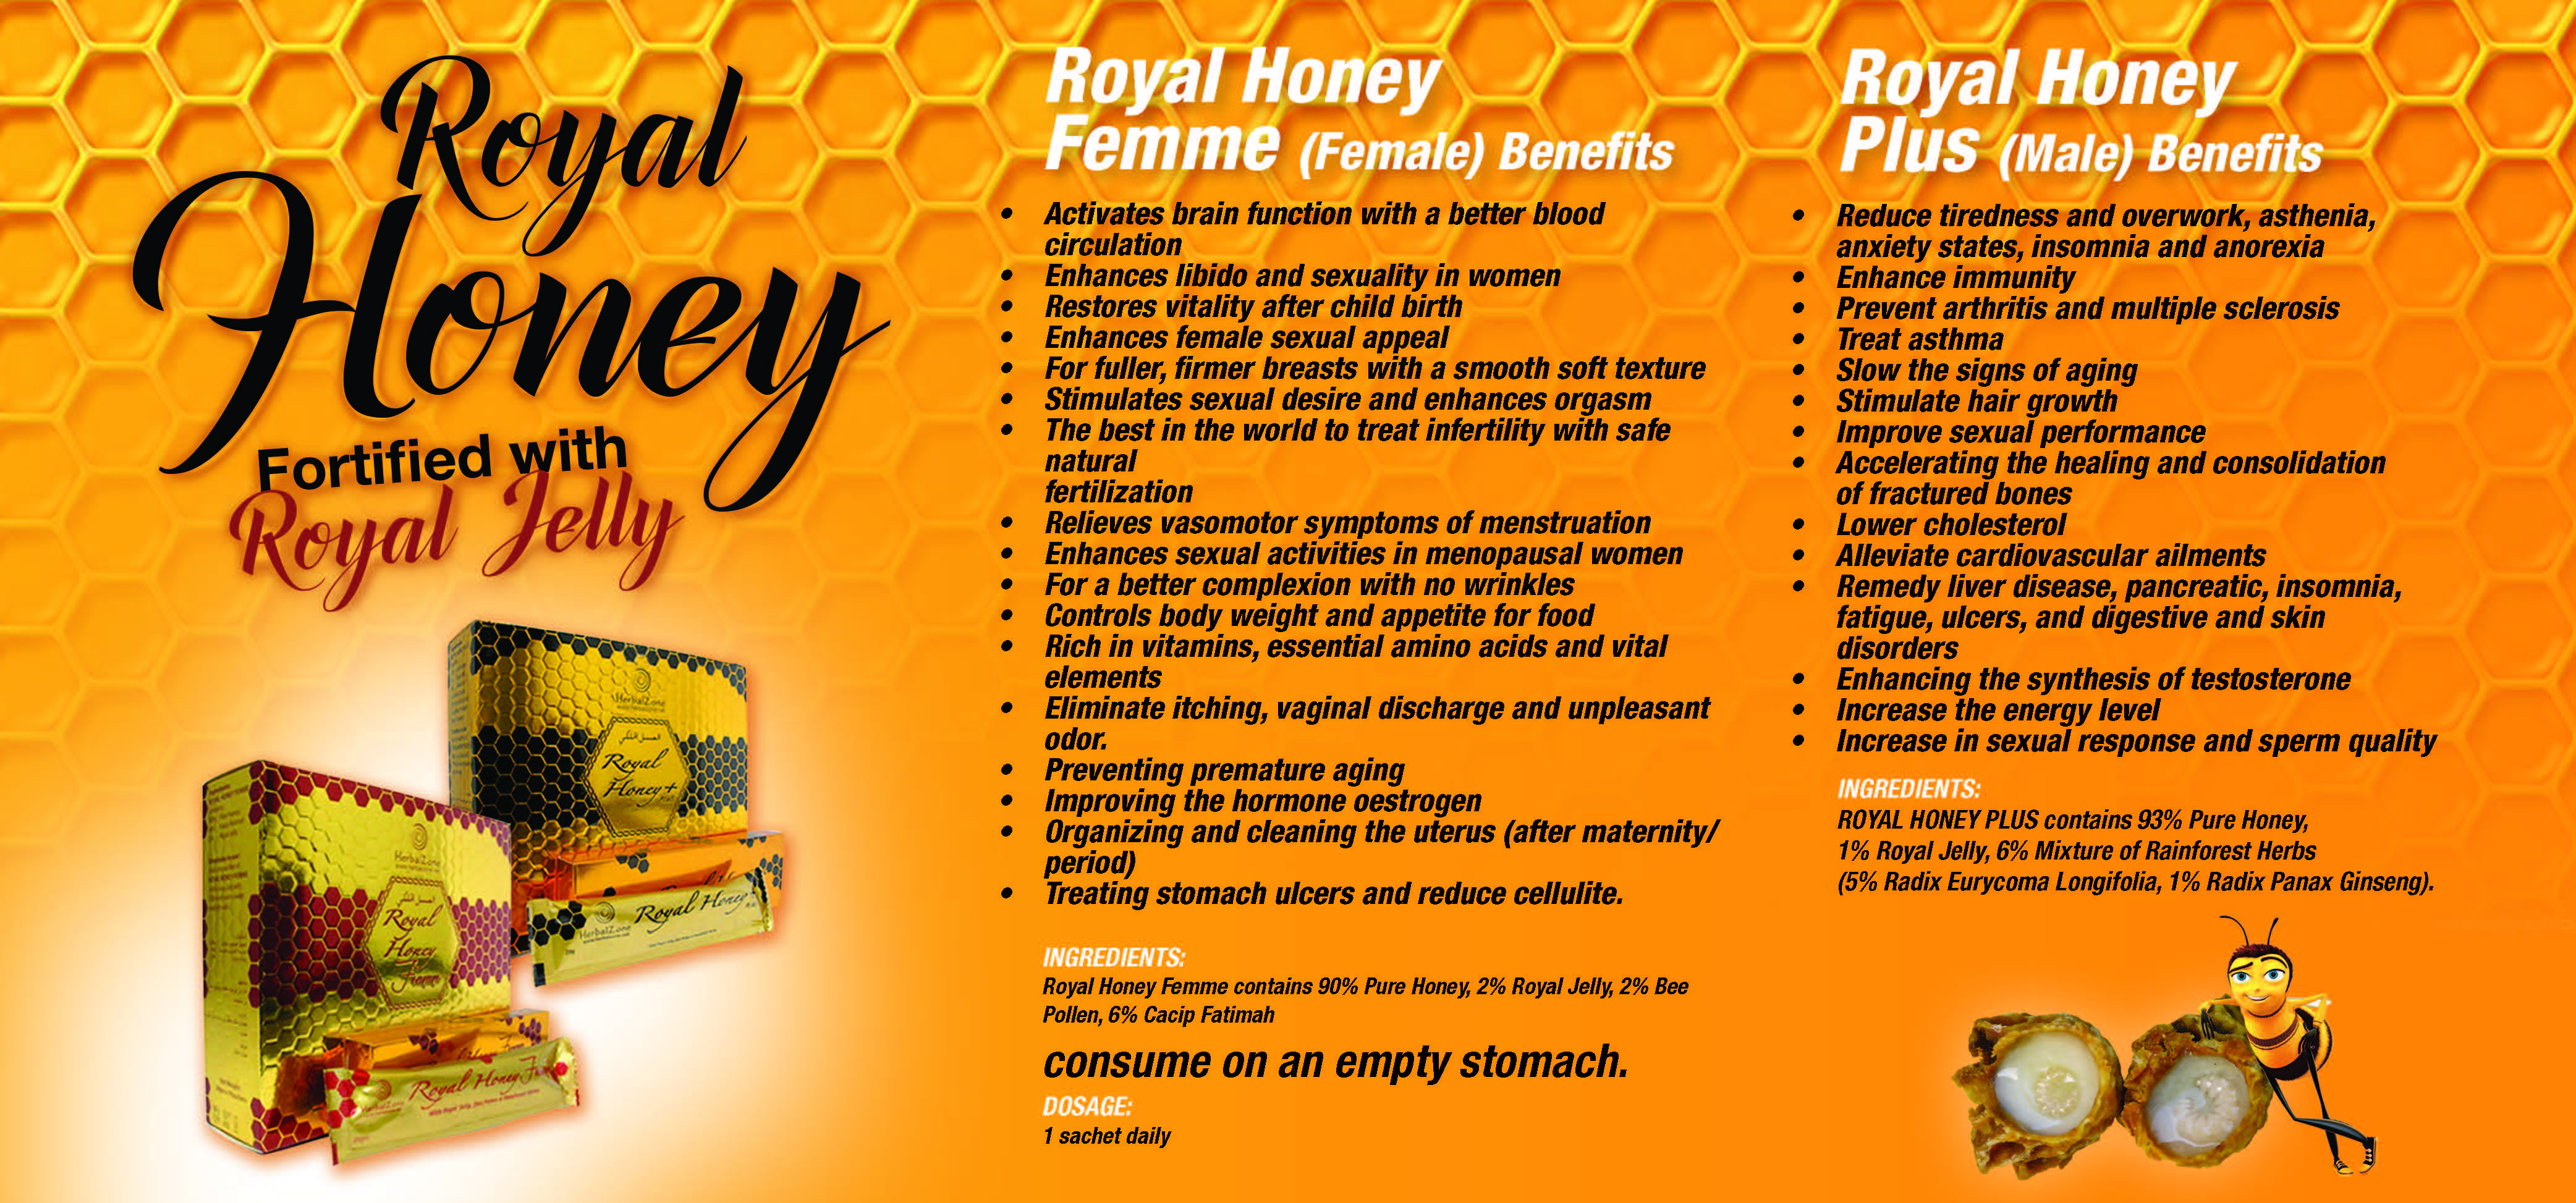 web scroller royal honey